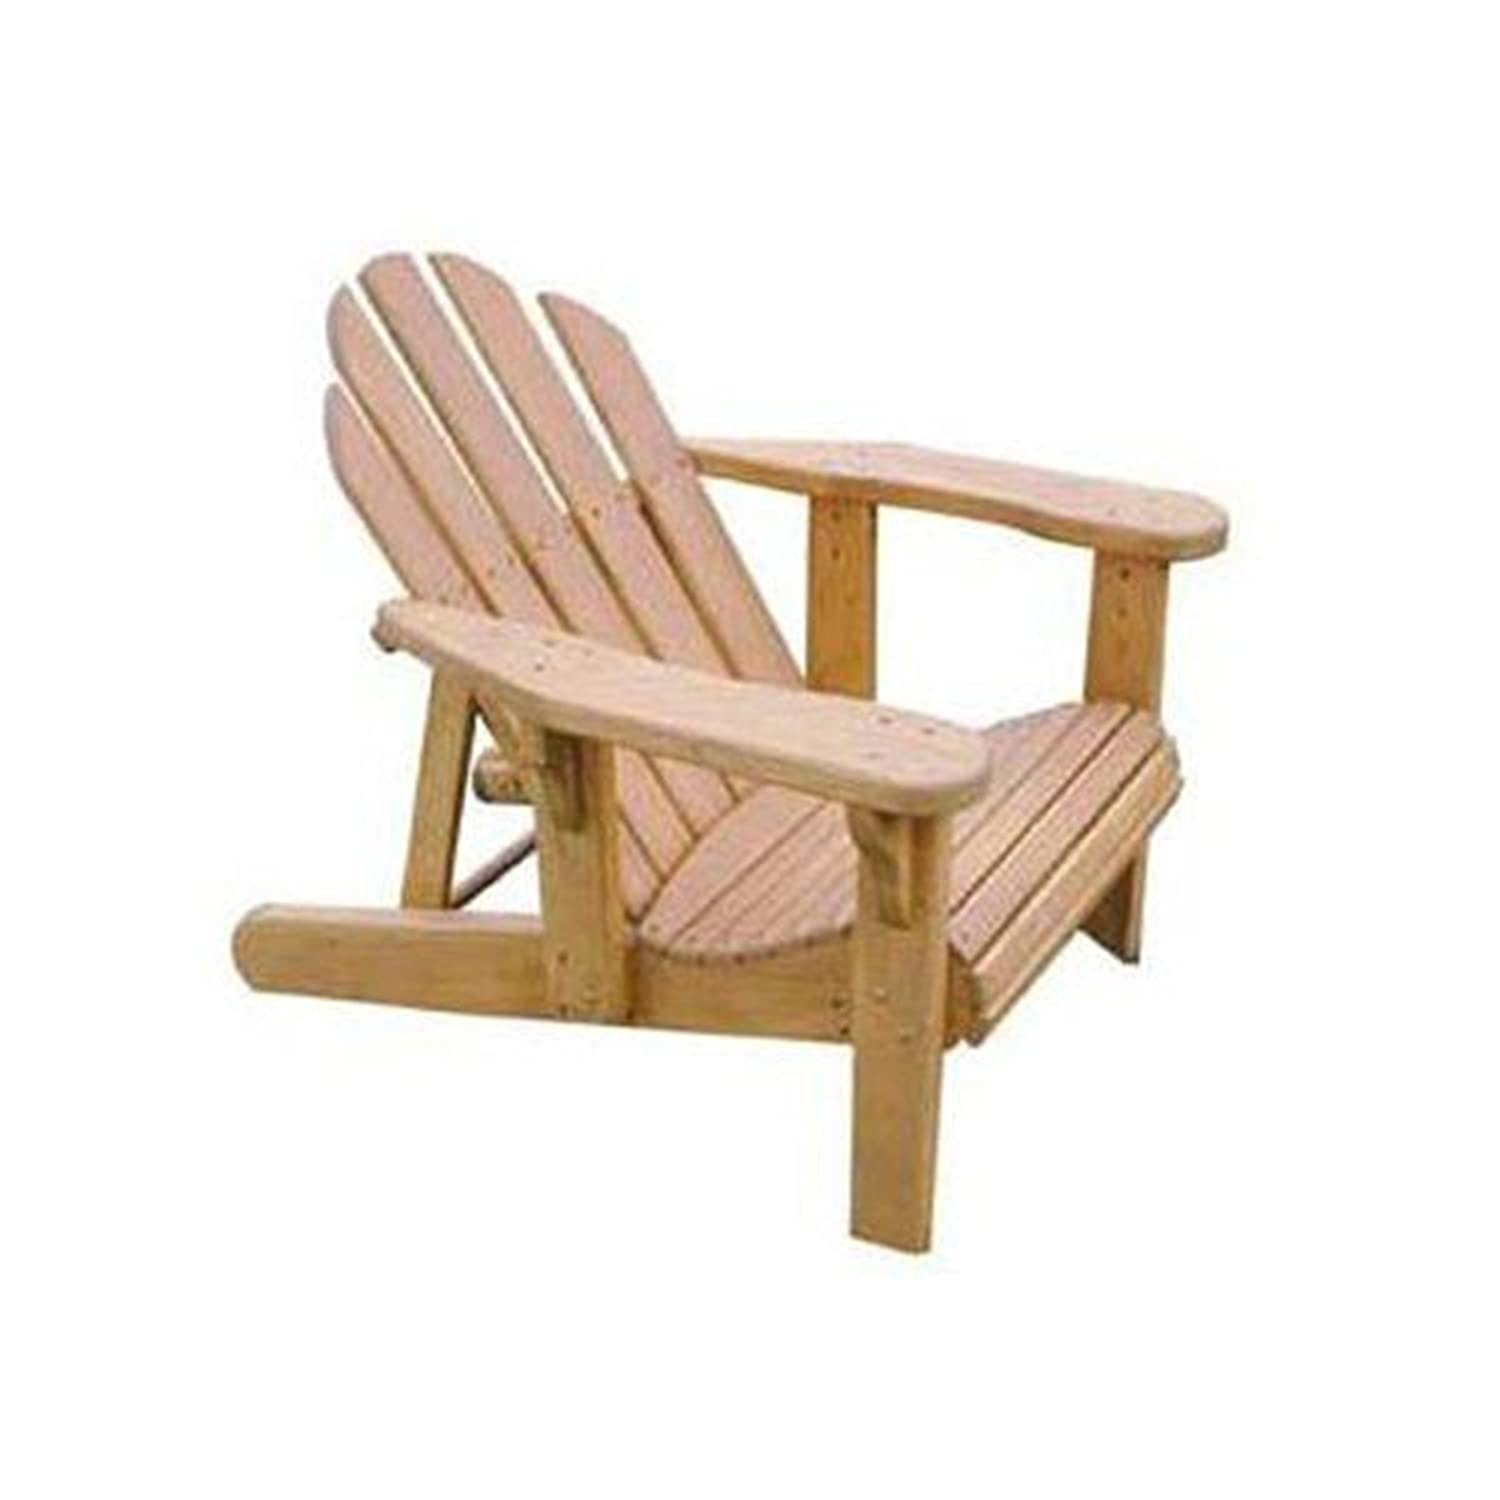 Woodworking Project Paper Plan to Build Adjustable Adirondack